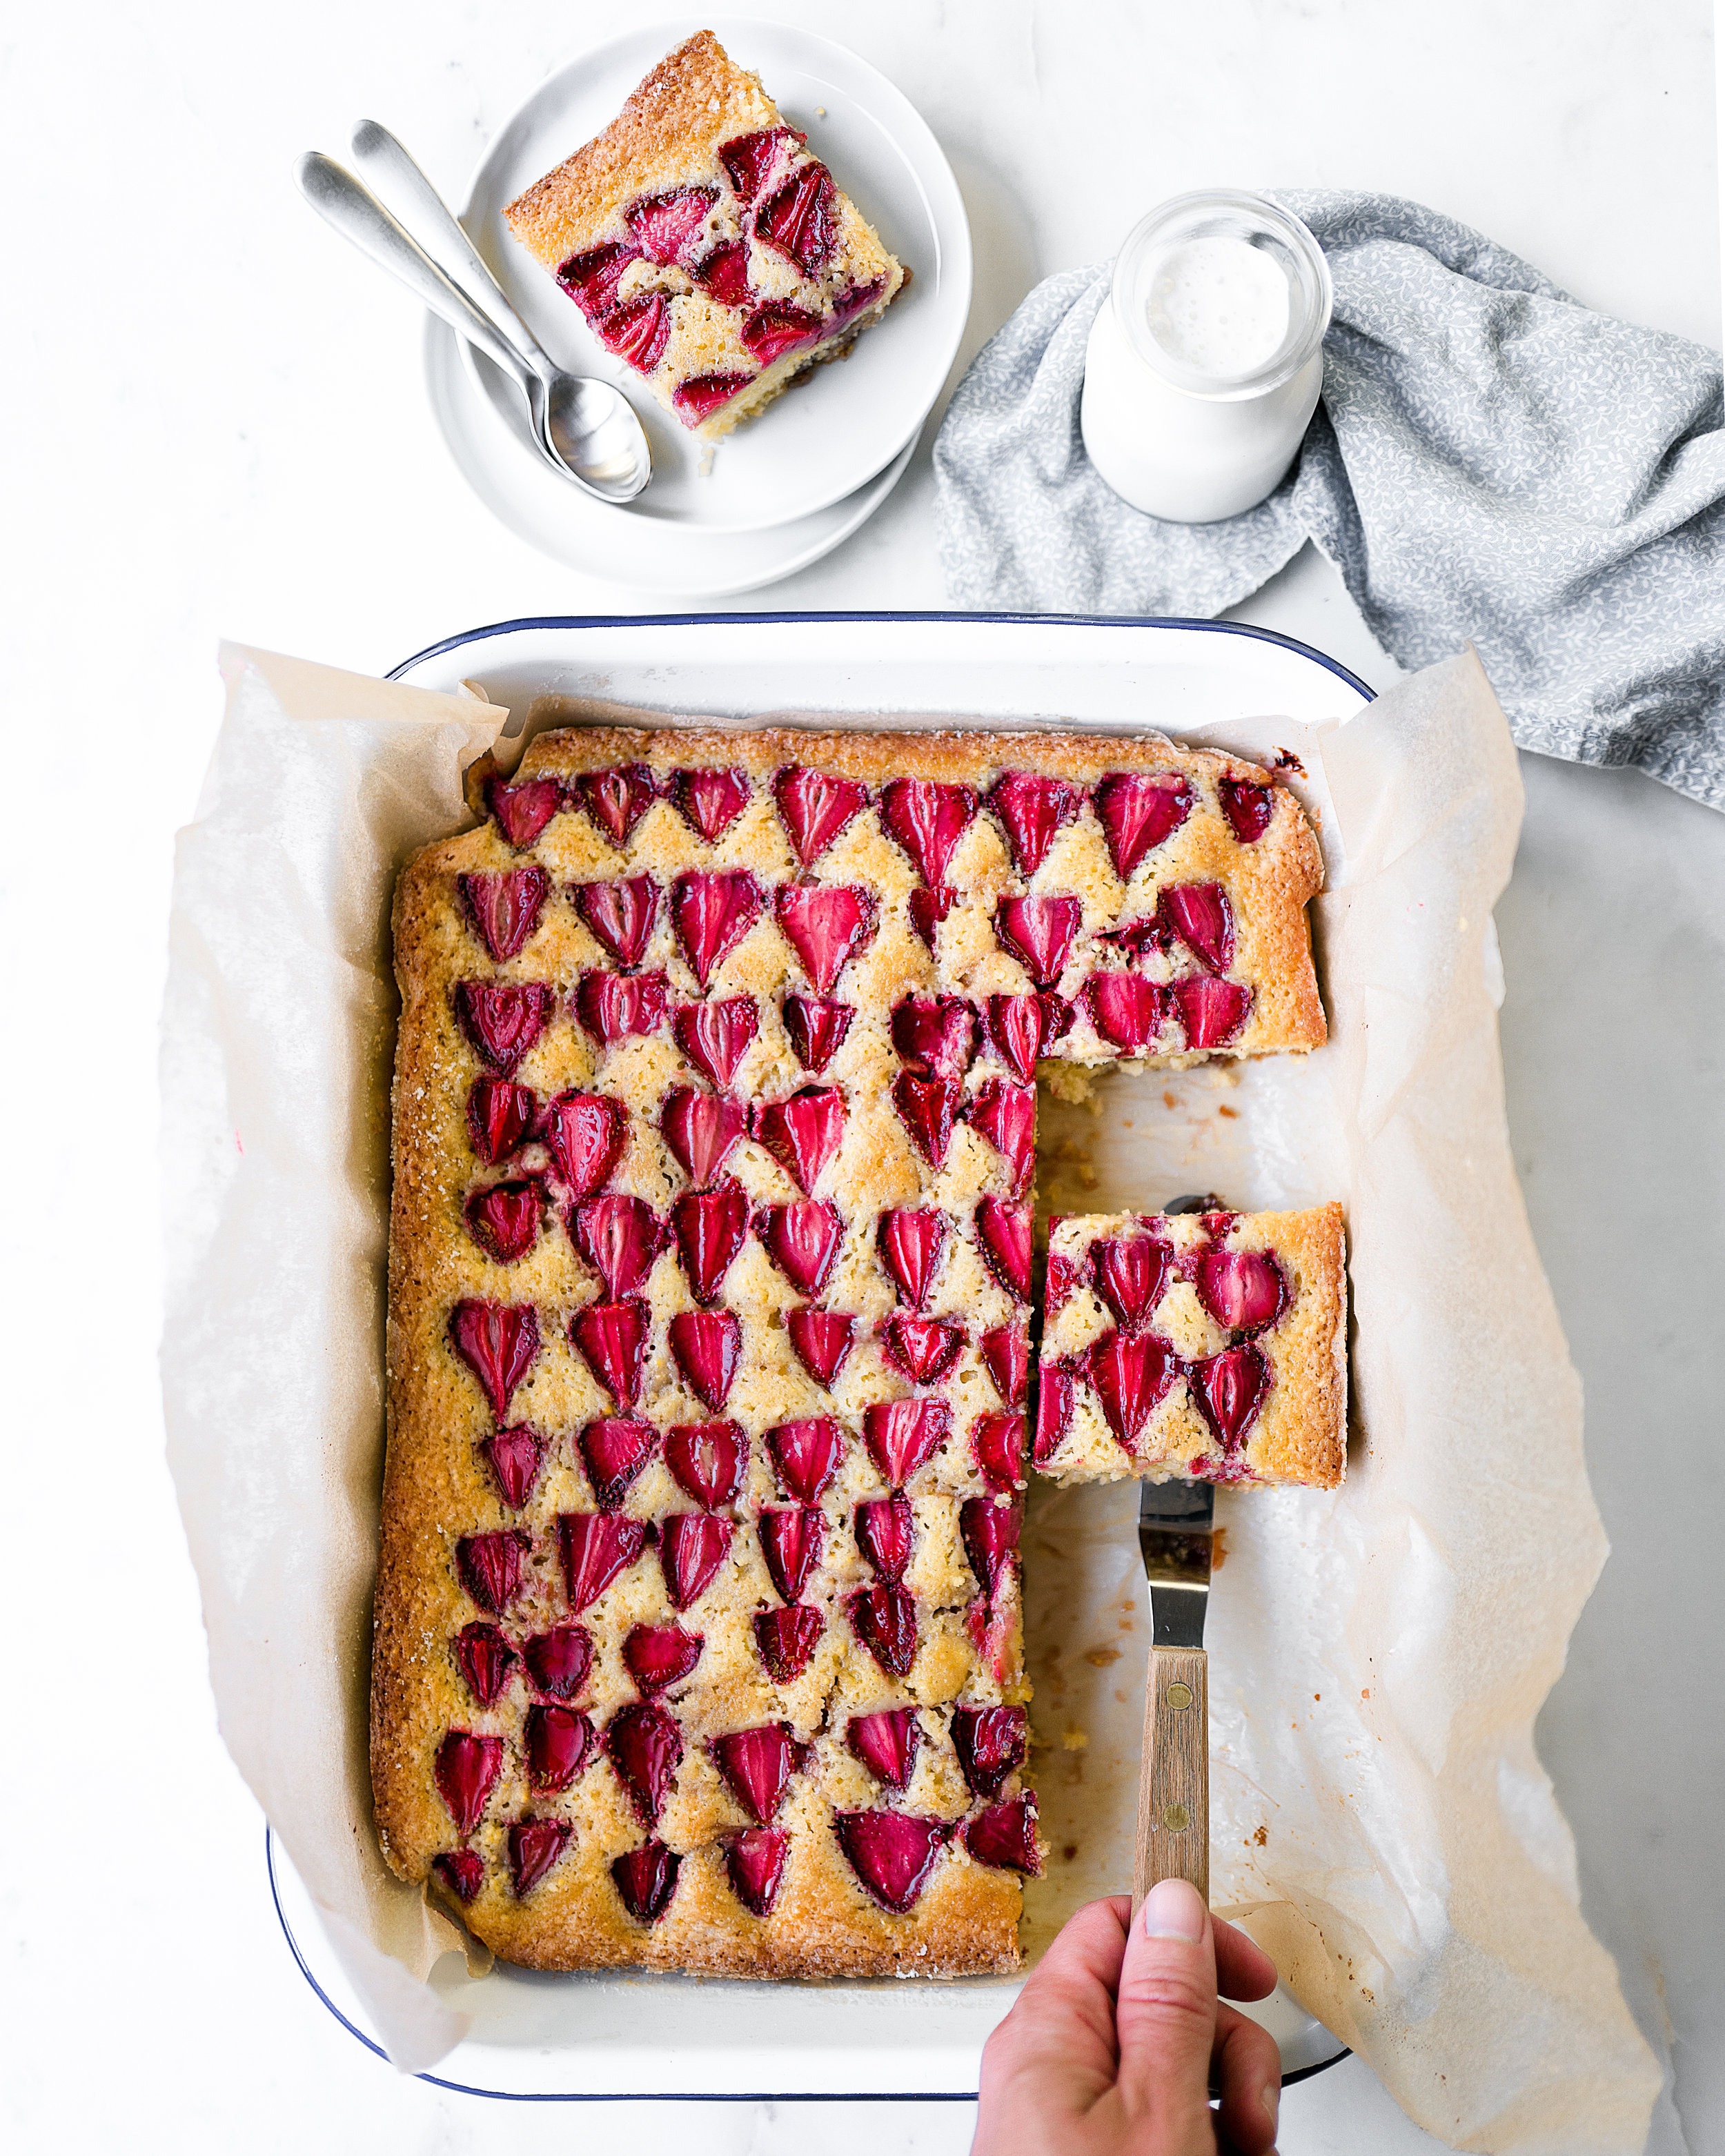 sarah jampel strawberry snacking cake LESS CONTRAST 3.jpg